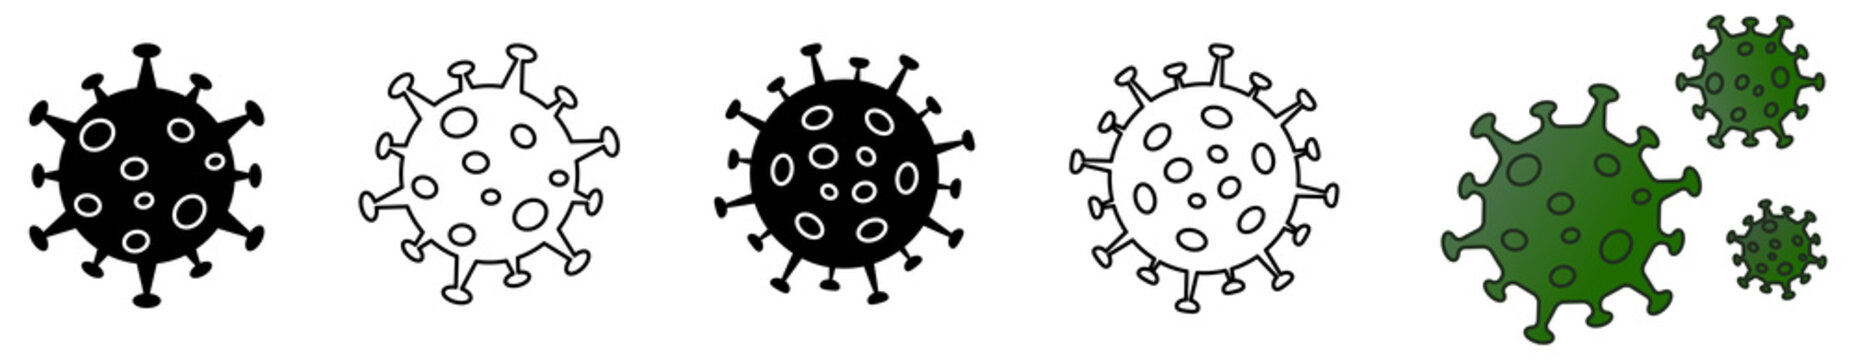 Simple virus drawing icon set, can be used as illustration for ncov coronavirus / covid 19